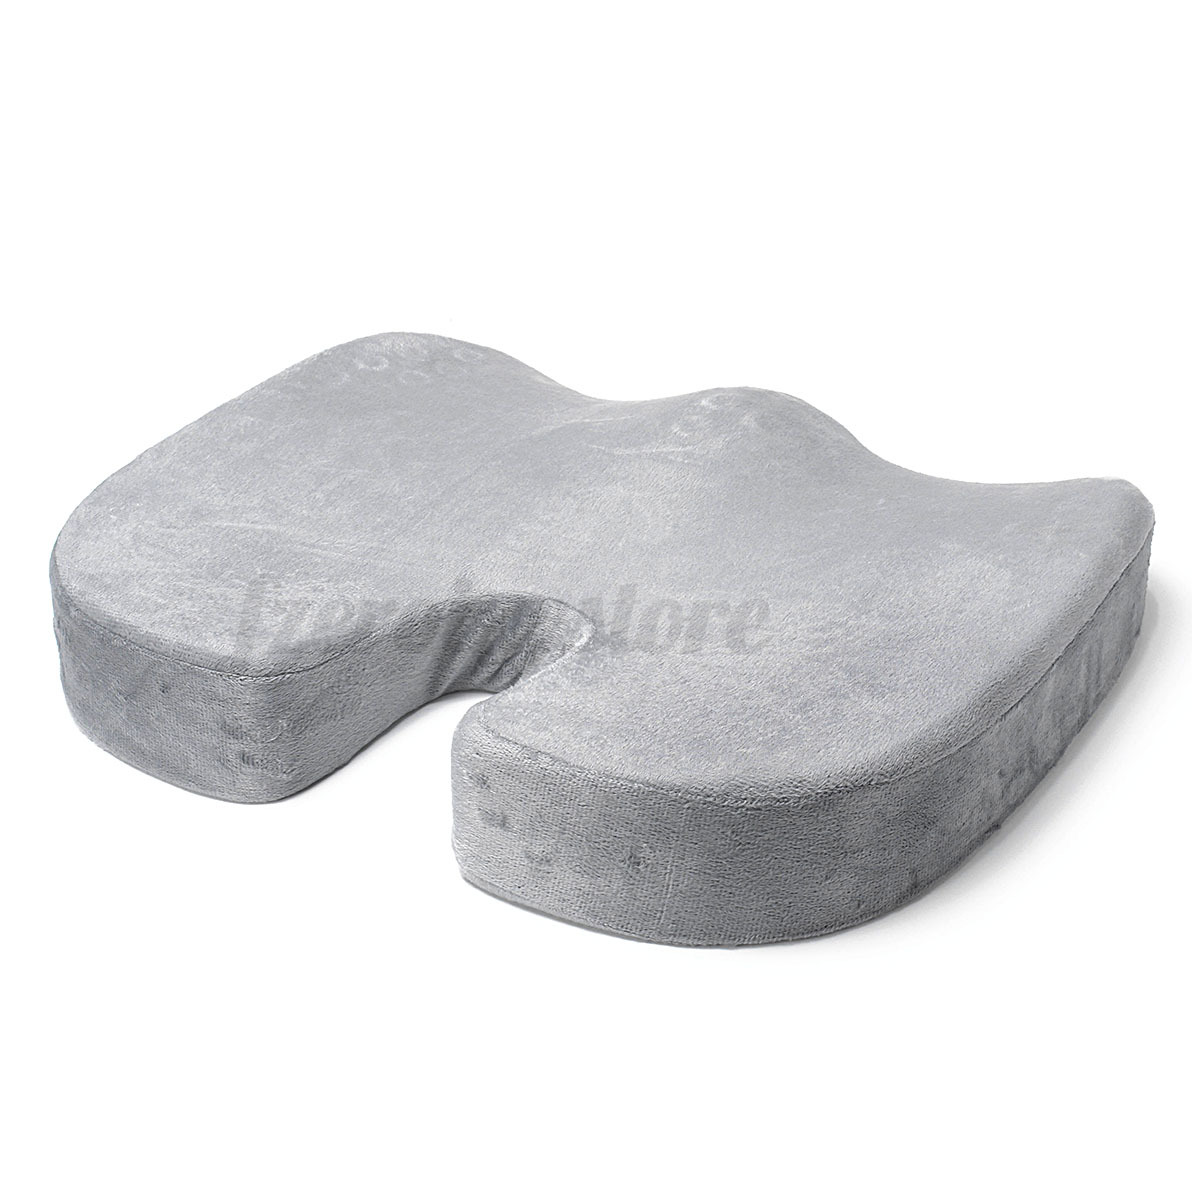 gel cushion for chairs x rocker office chair coccyx orthopedic enhanced comfort memory foam seat